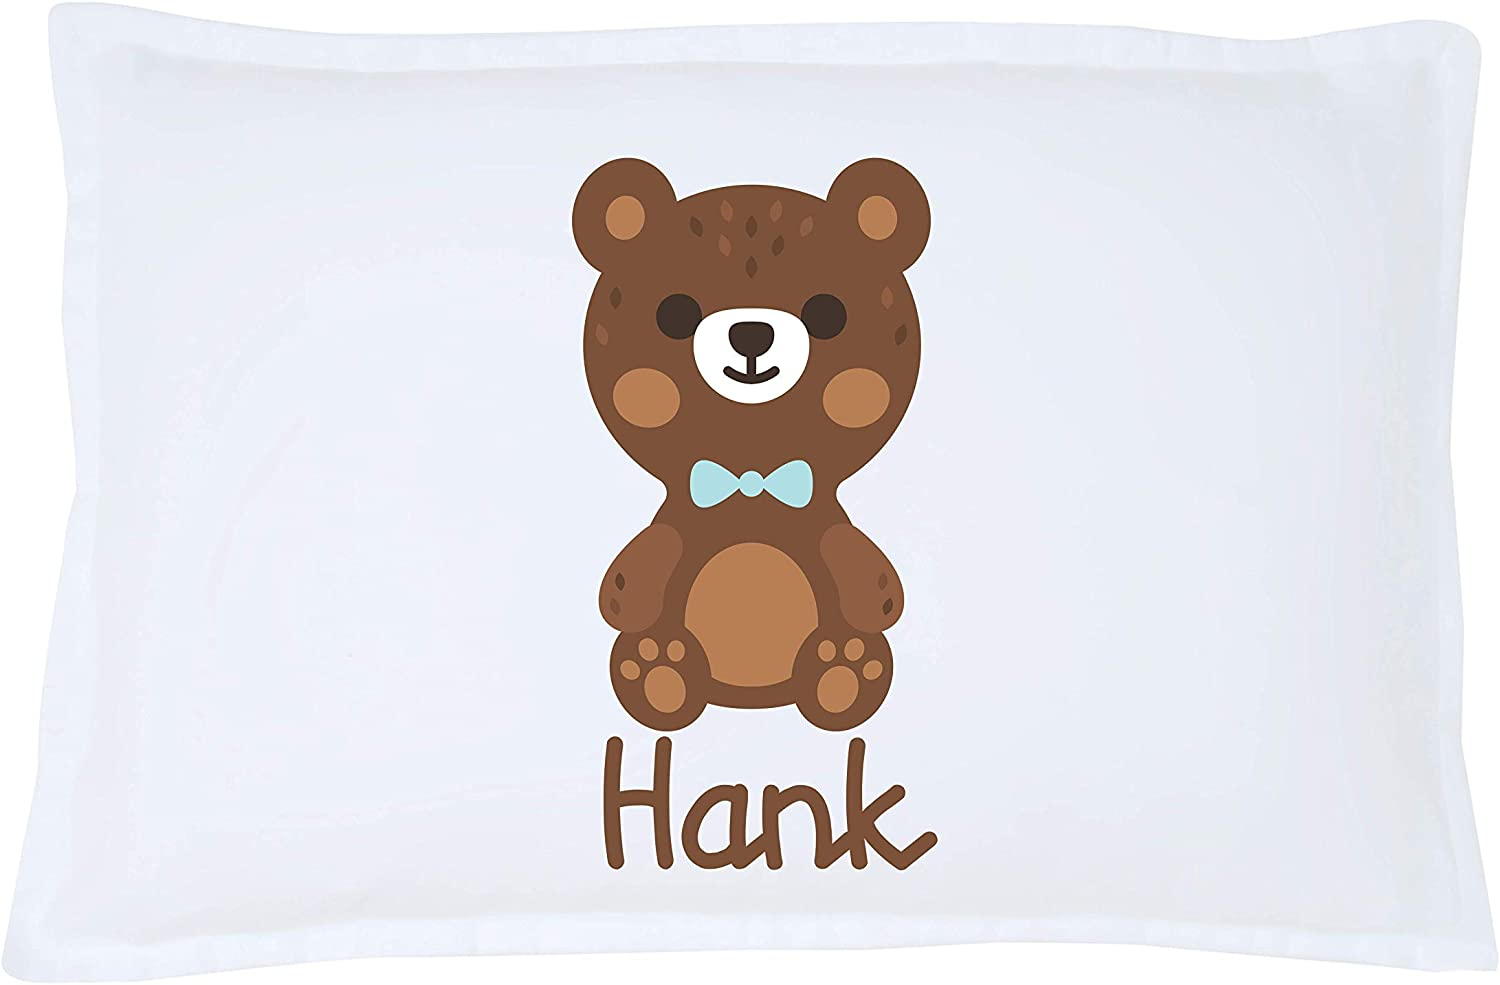 Personalized Pillows for Kids Microfiber Standard 20 x 30 inches Decorative Pillowcase Bear Coleman Personalized Pillowcase Gender Neutral Bedding Custom Pillowcases Personalized